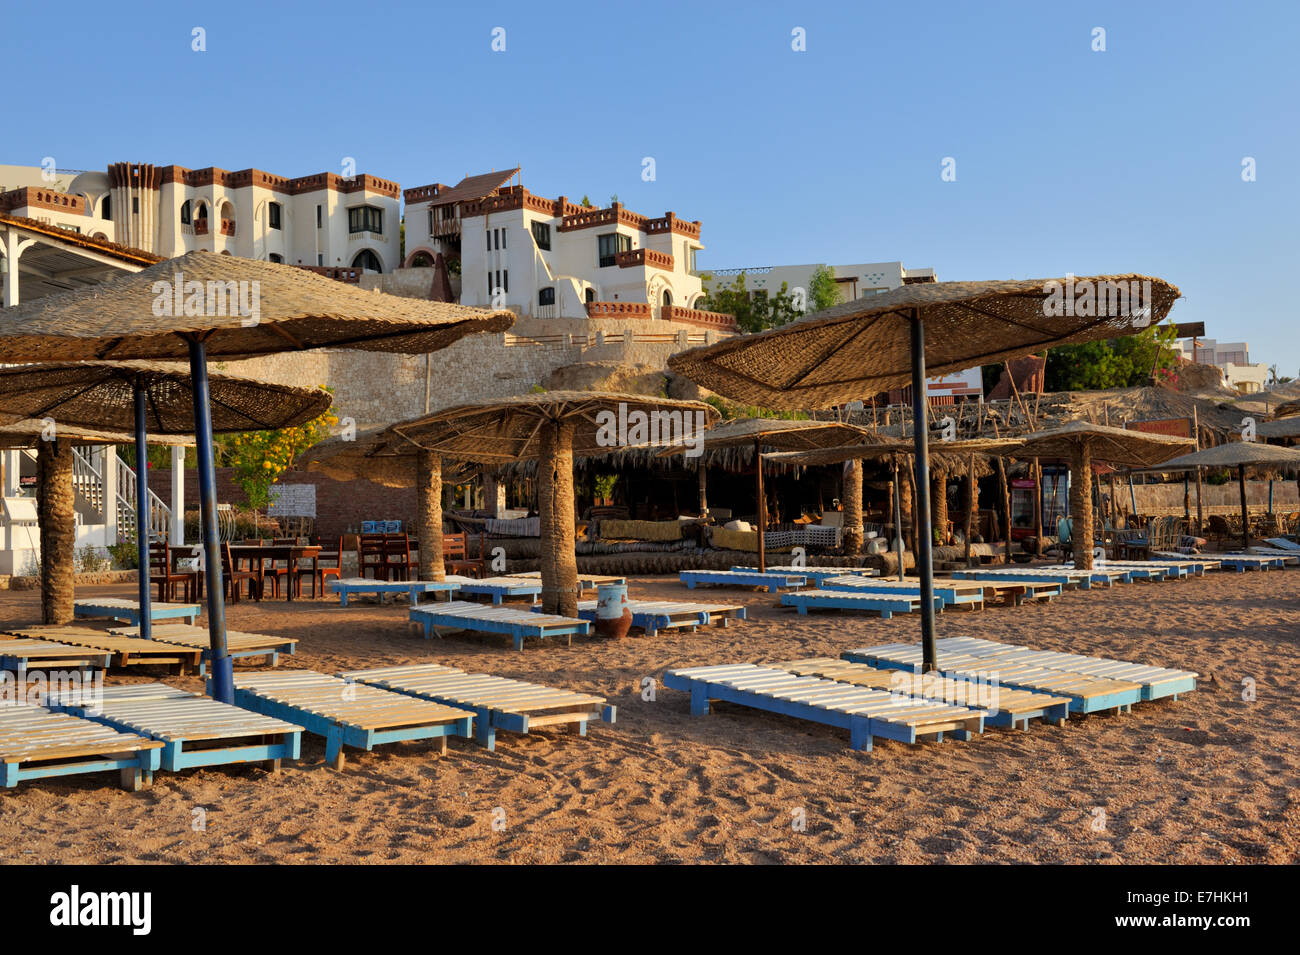 Beach resort Umbi at 'Sharks Bay' in Sharm El Sheikh by the Red Sea, Egypt. Popular with divers and tourists, - Stock Image